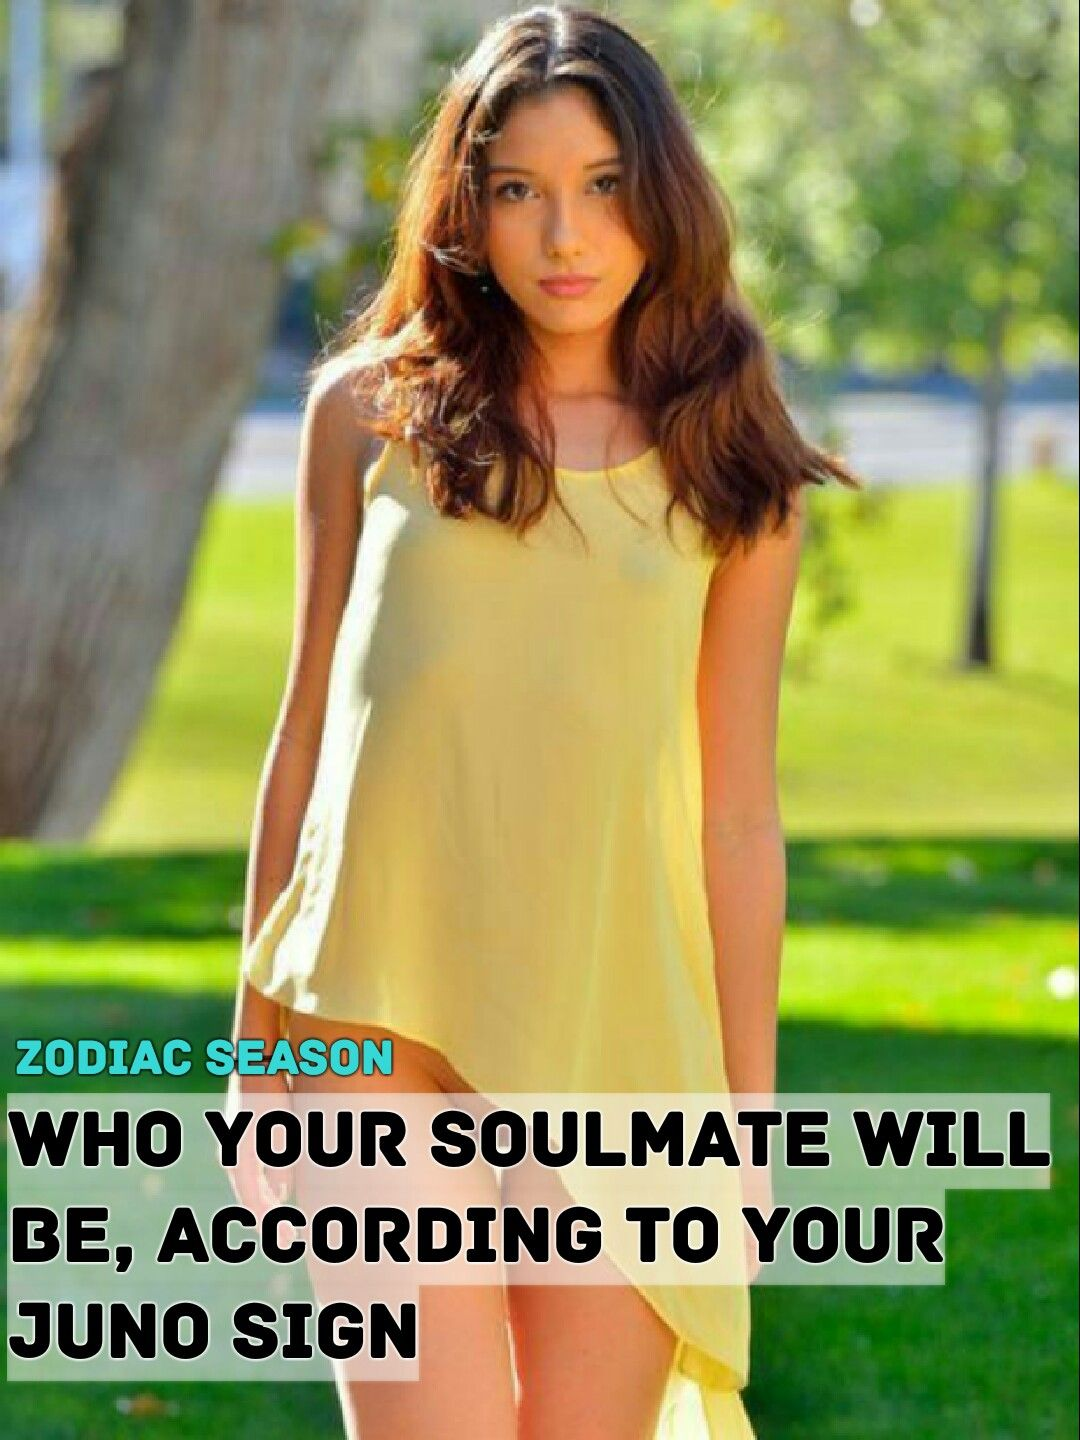 The Key To Finding Your Soulmate Has Been Sitting In Birth Chart All Along Waiting Patiently For You Discover It Zodiac Zodiacseason